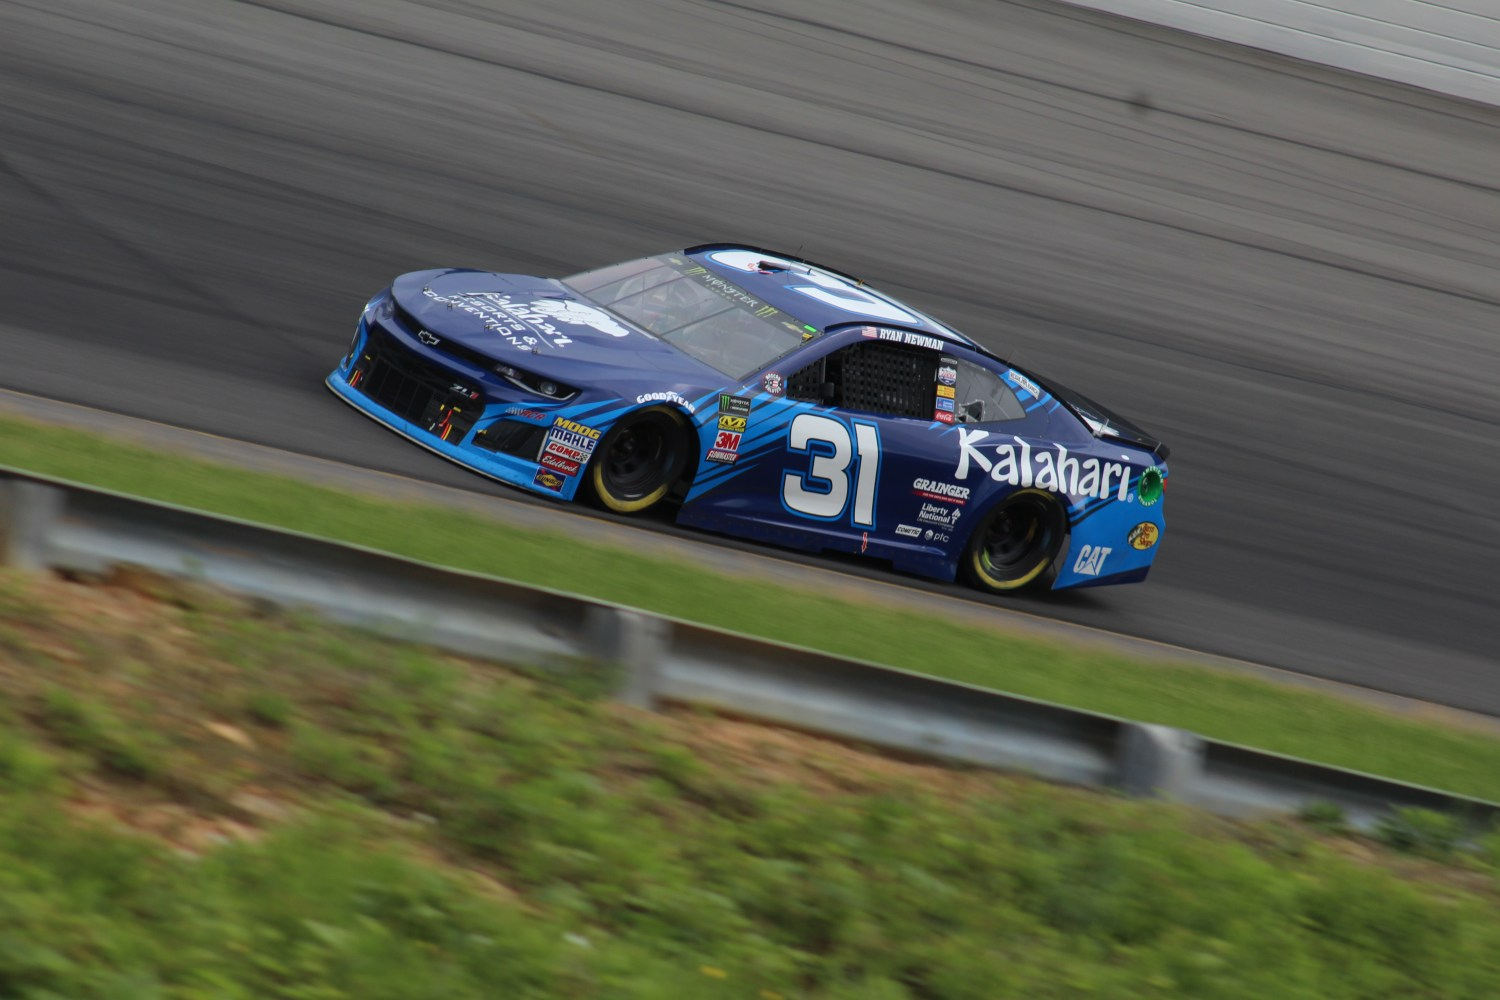 Ryan Newman races during the 2018 Pocono 400. (Tyler Head | The Racing Experts)